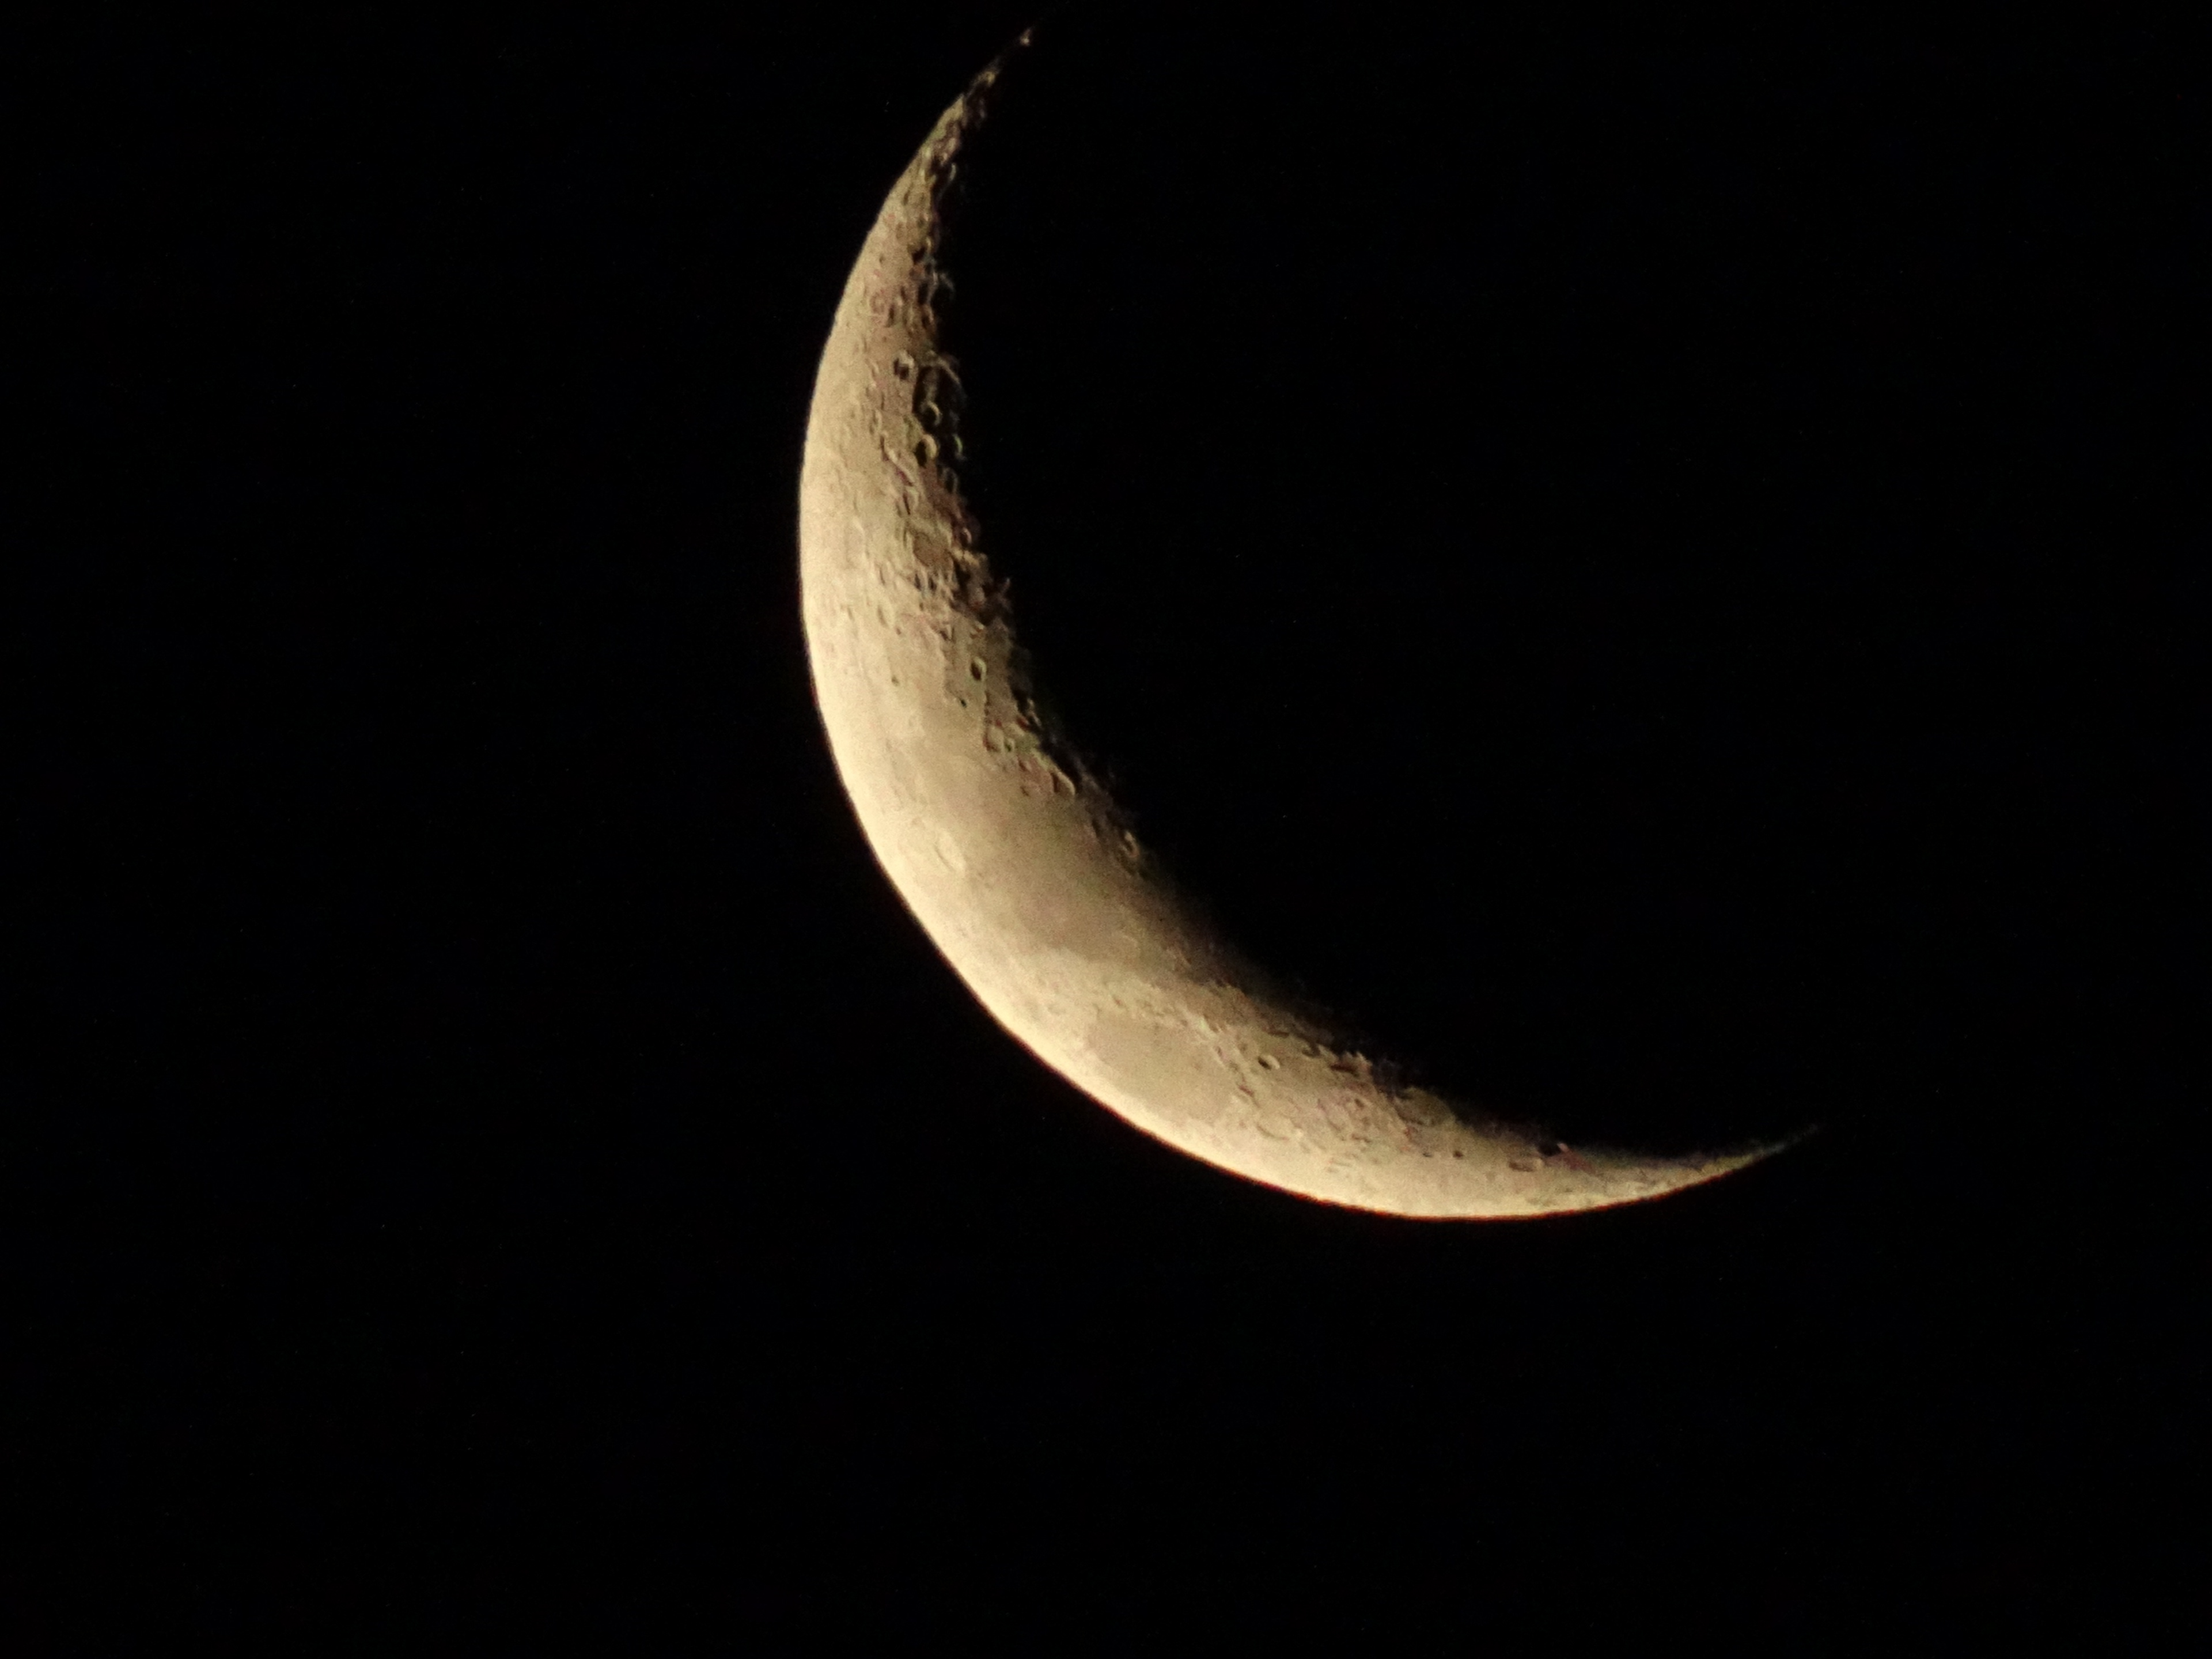 The close up shot of the moon on a clear night - not bad with the city lights